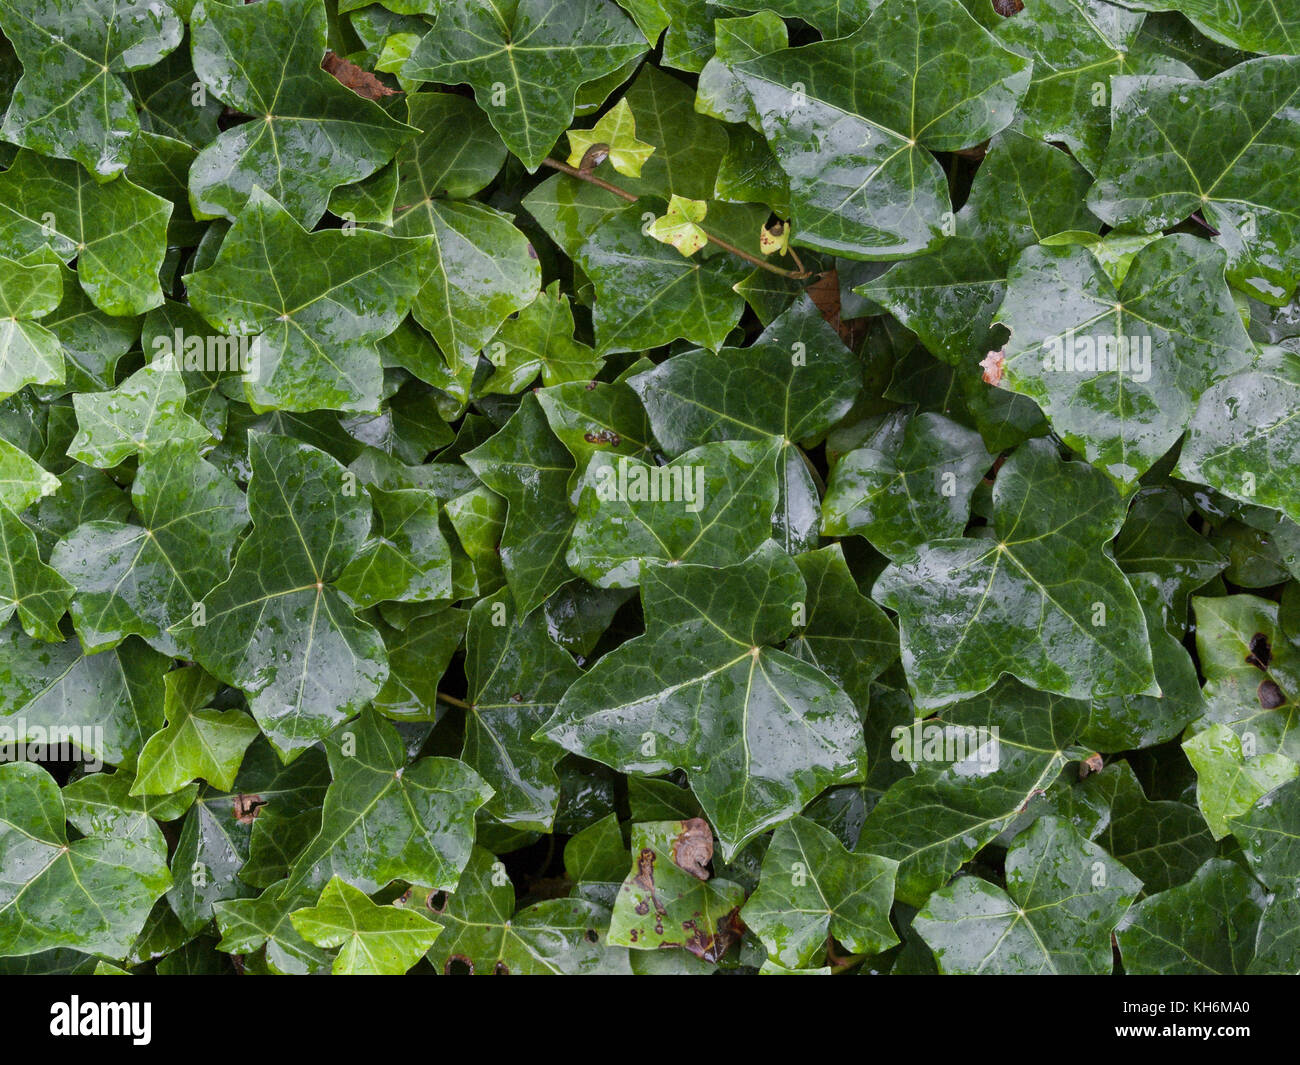 Cluster of wet Ivy (Hedera helix) leaves,. - Stock Image